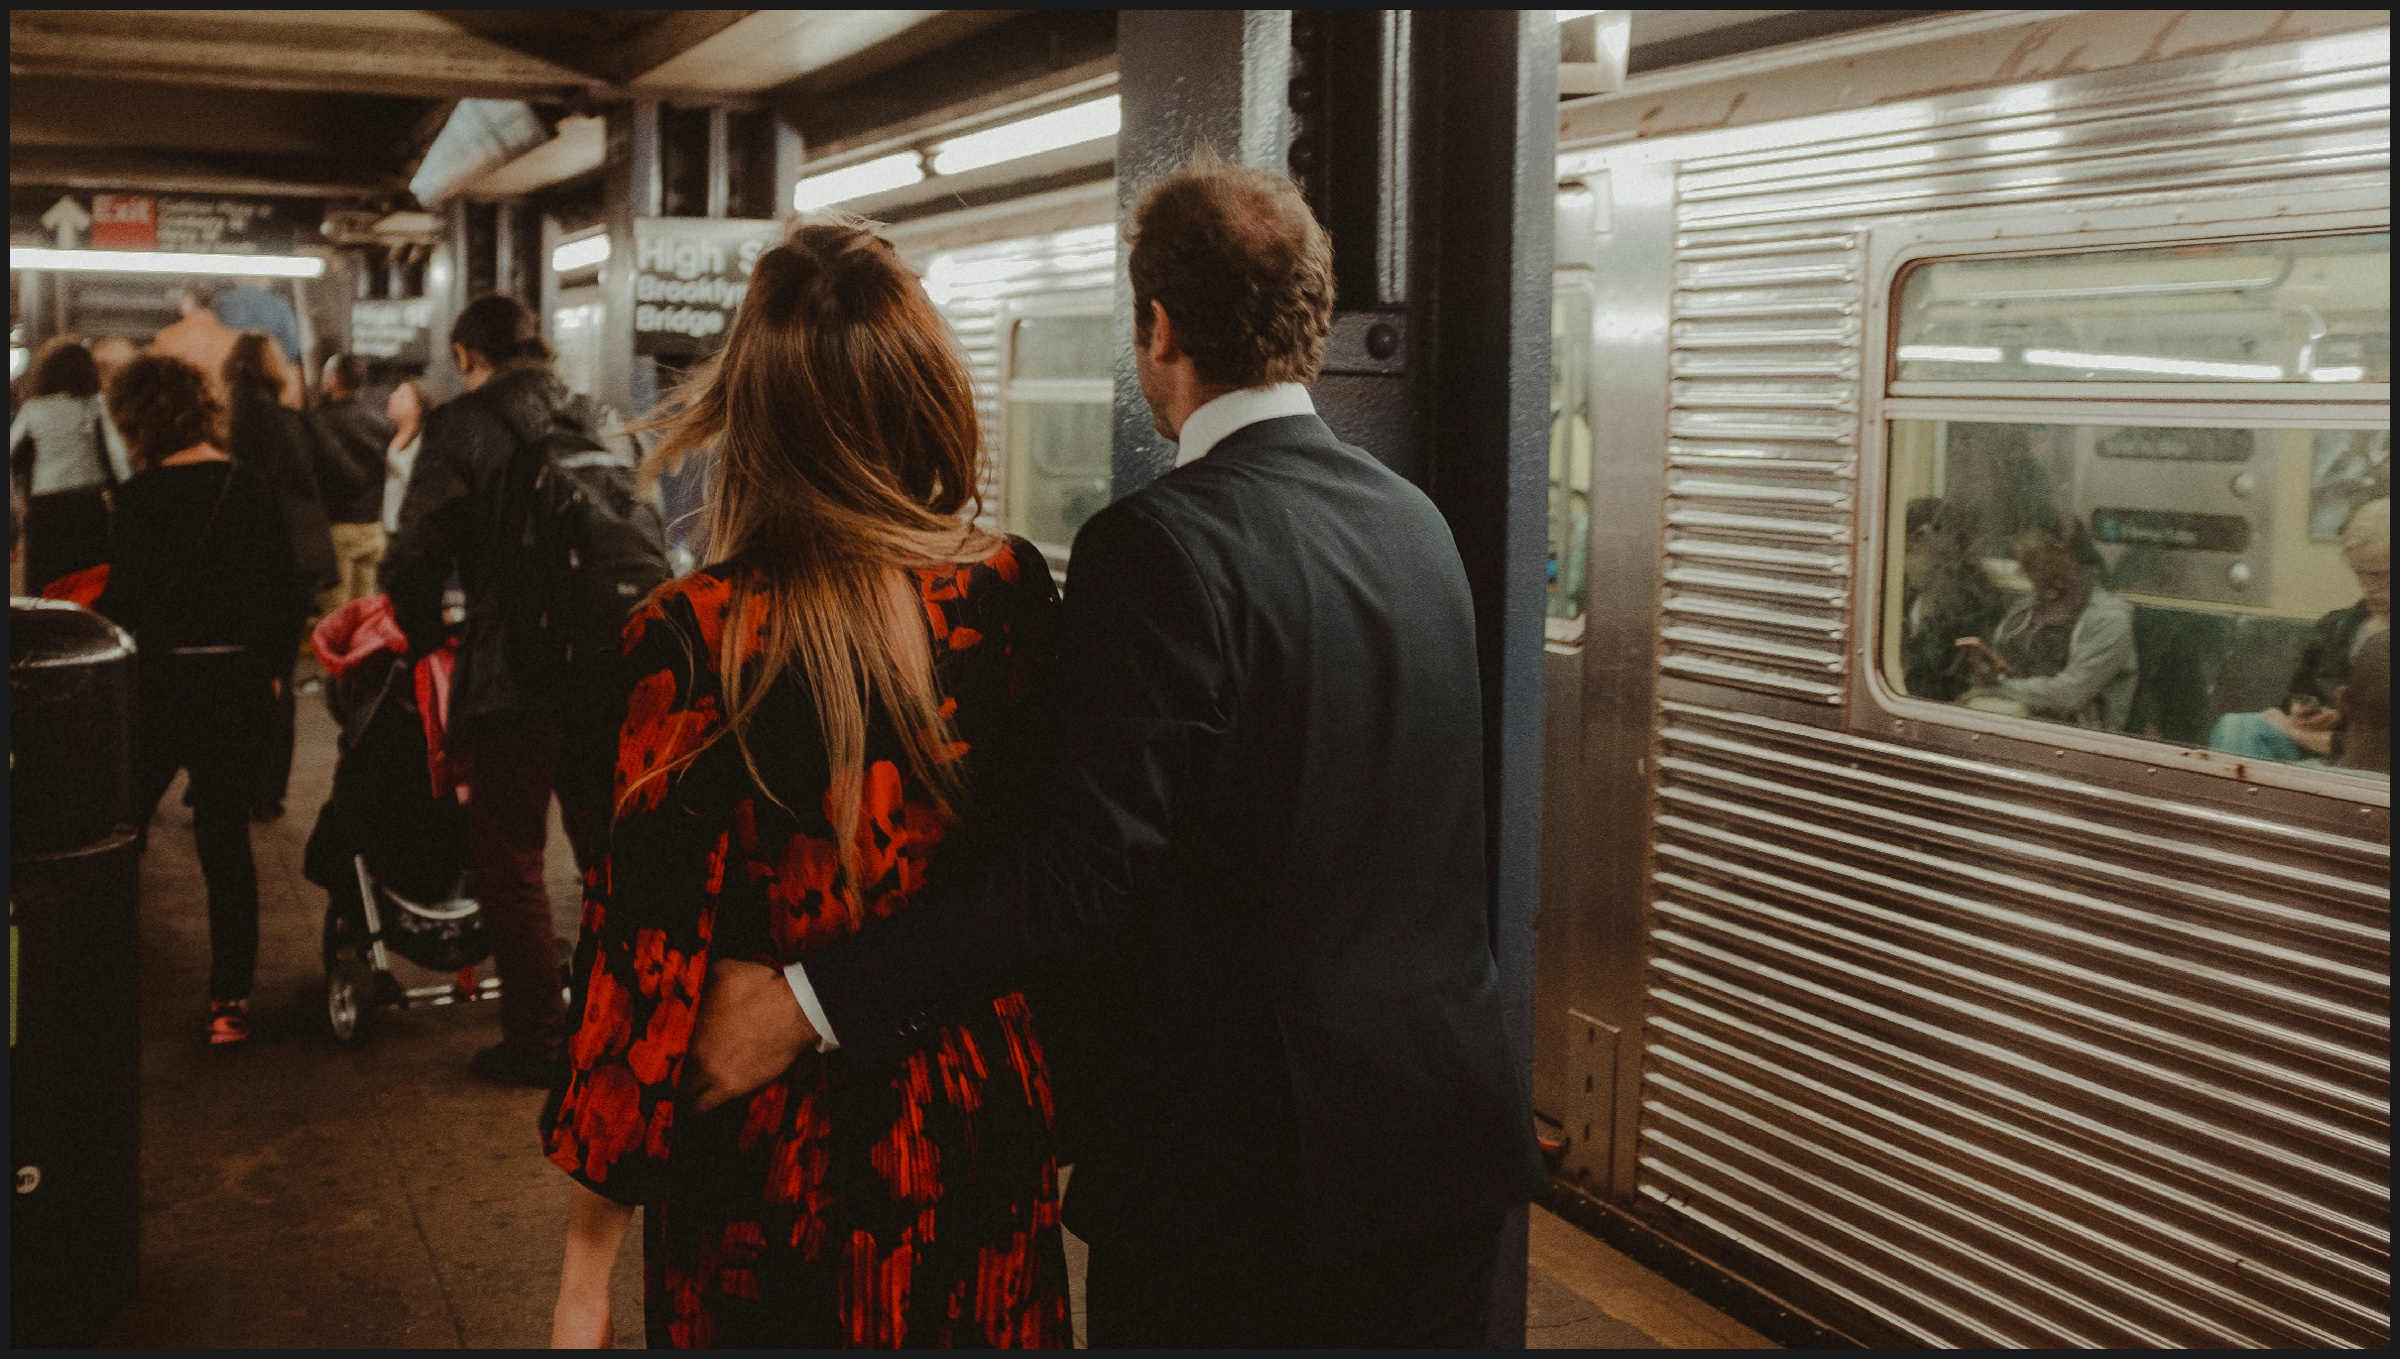 engagement photos inside a new york subway